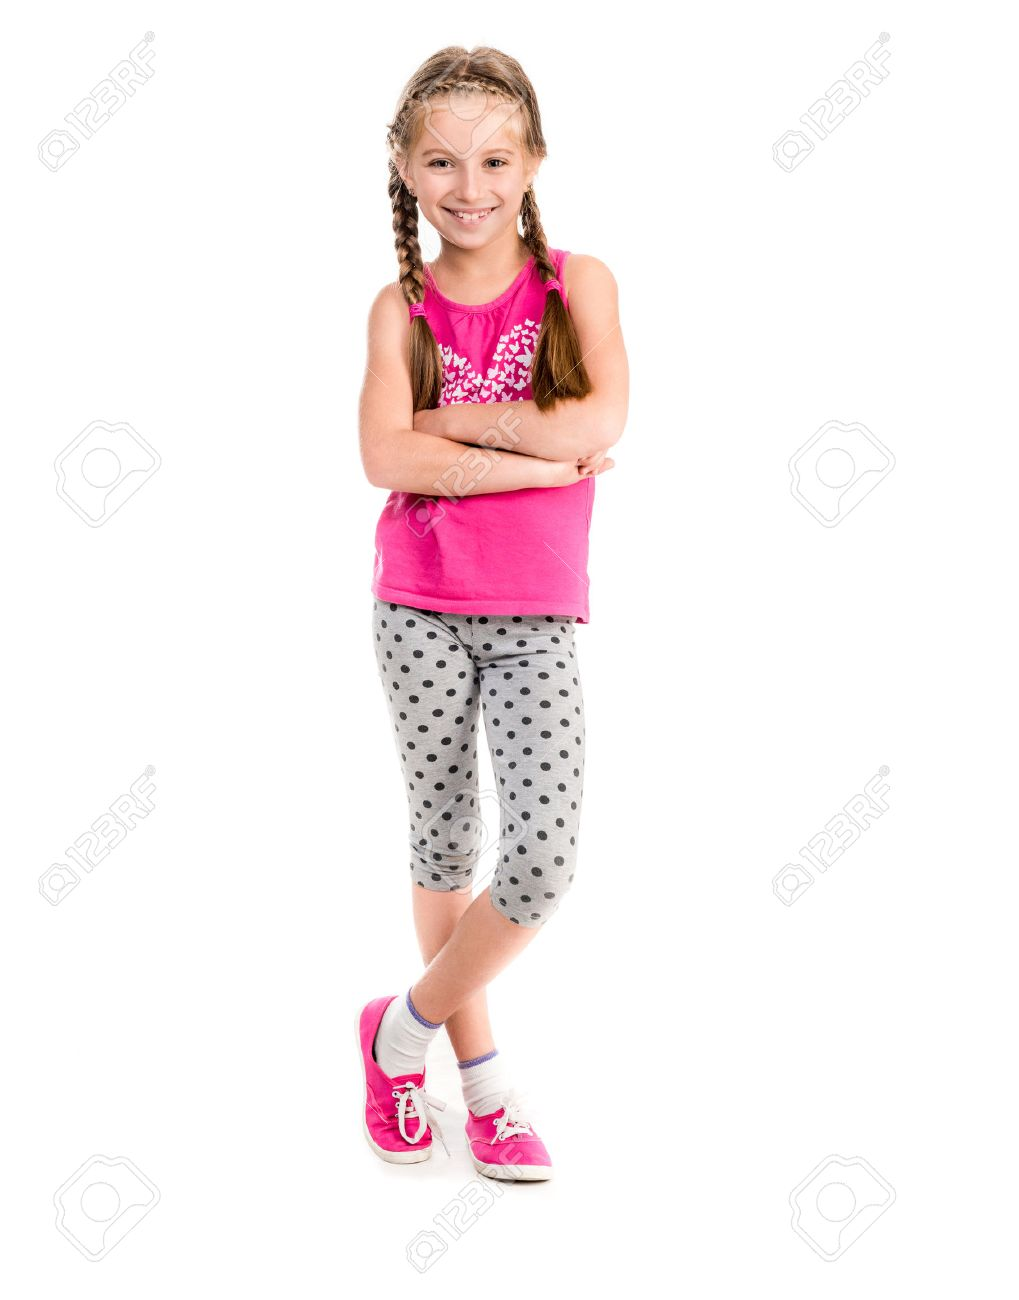 little girl standing with hands on sides doing fitness - 44481590